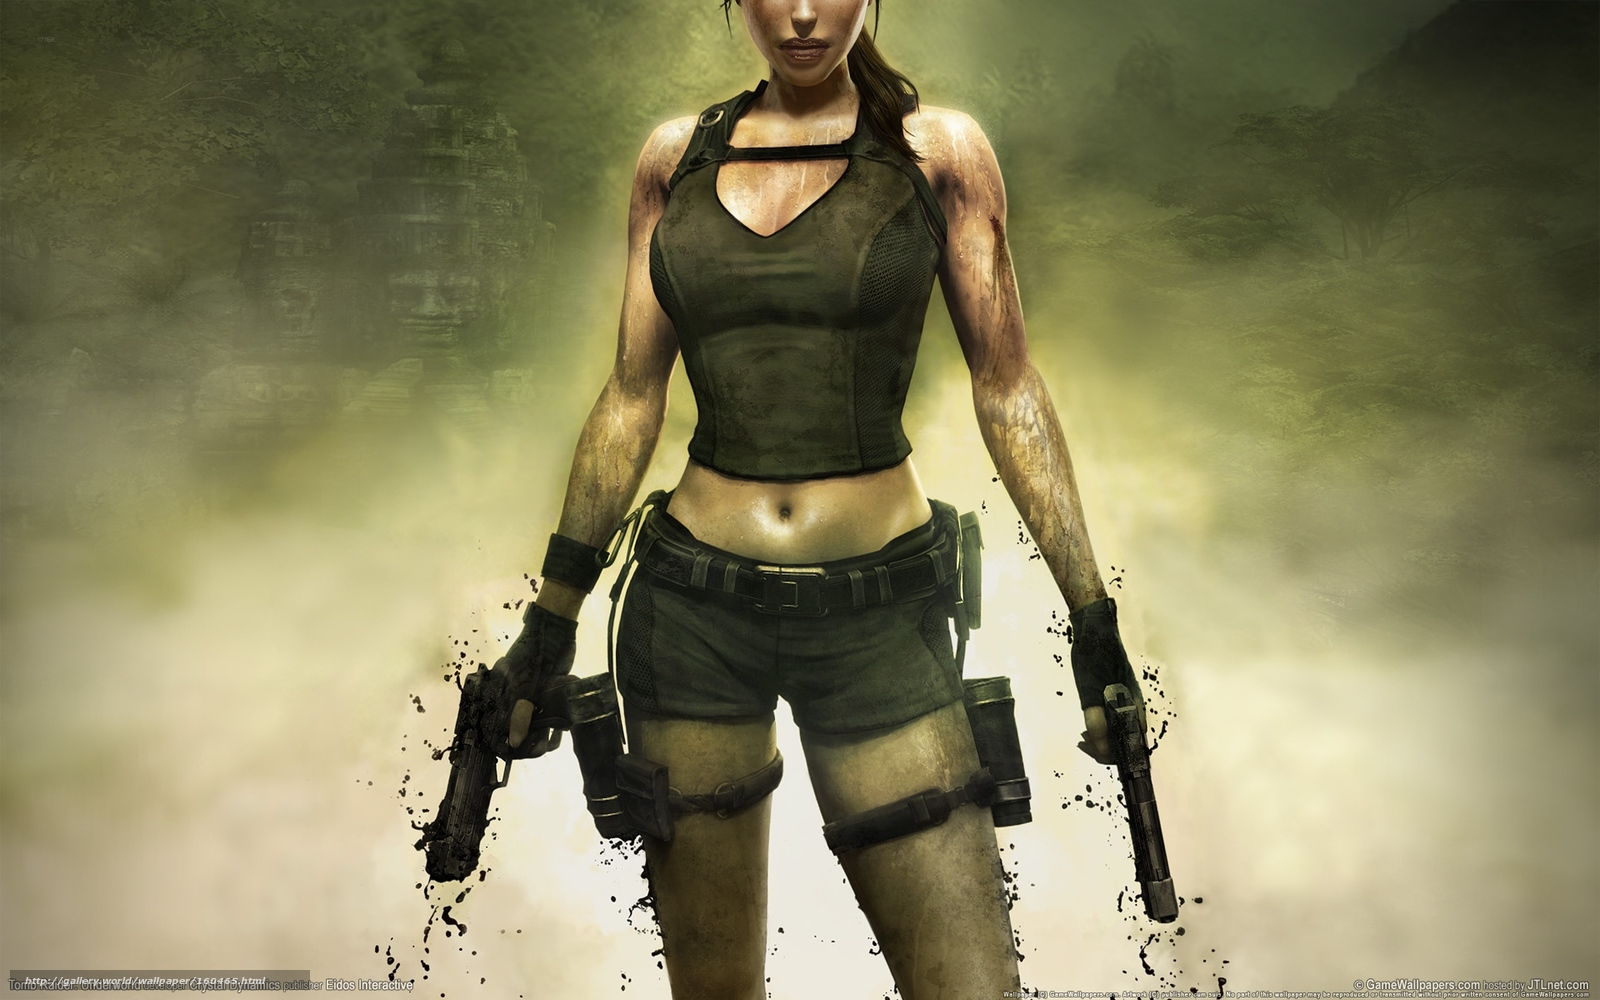 Tomb raider muschi nackt photos